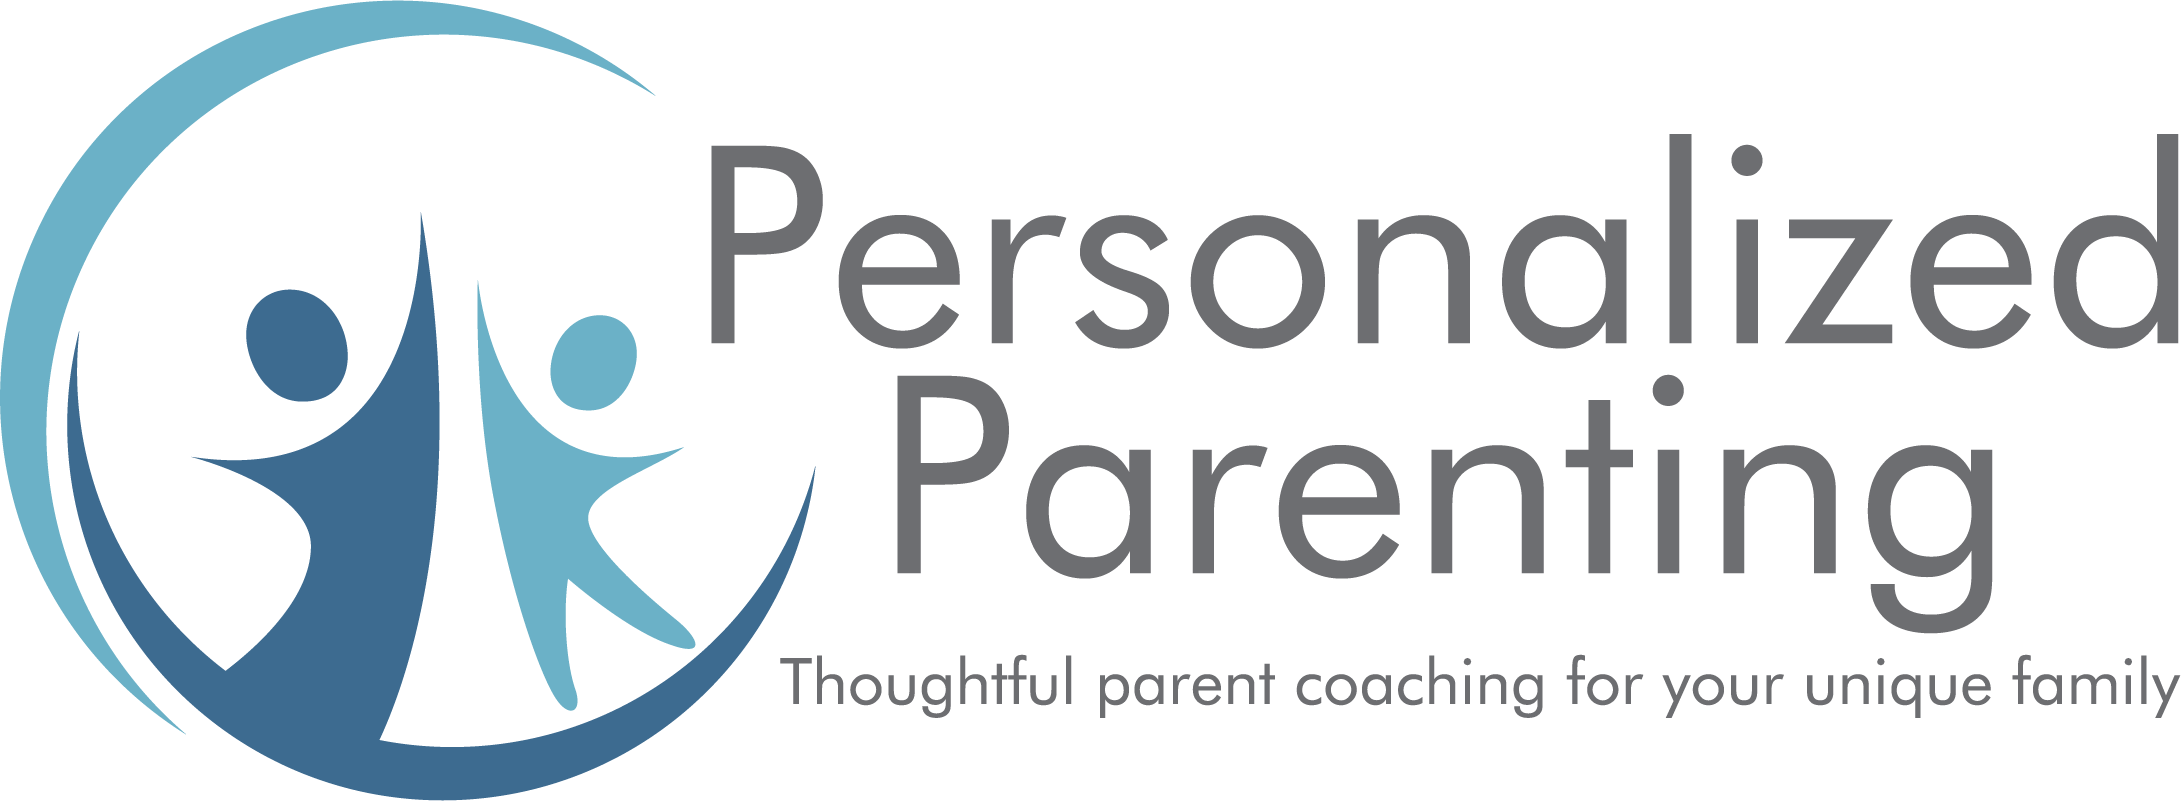 PersonalizedParentingLogo_Color_2.png